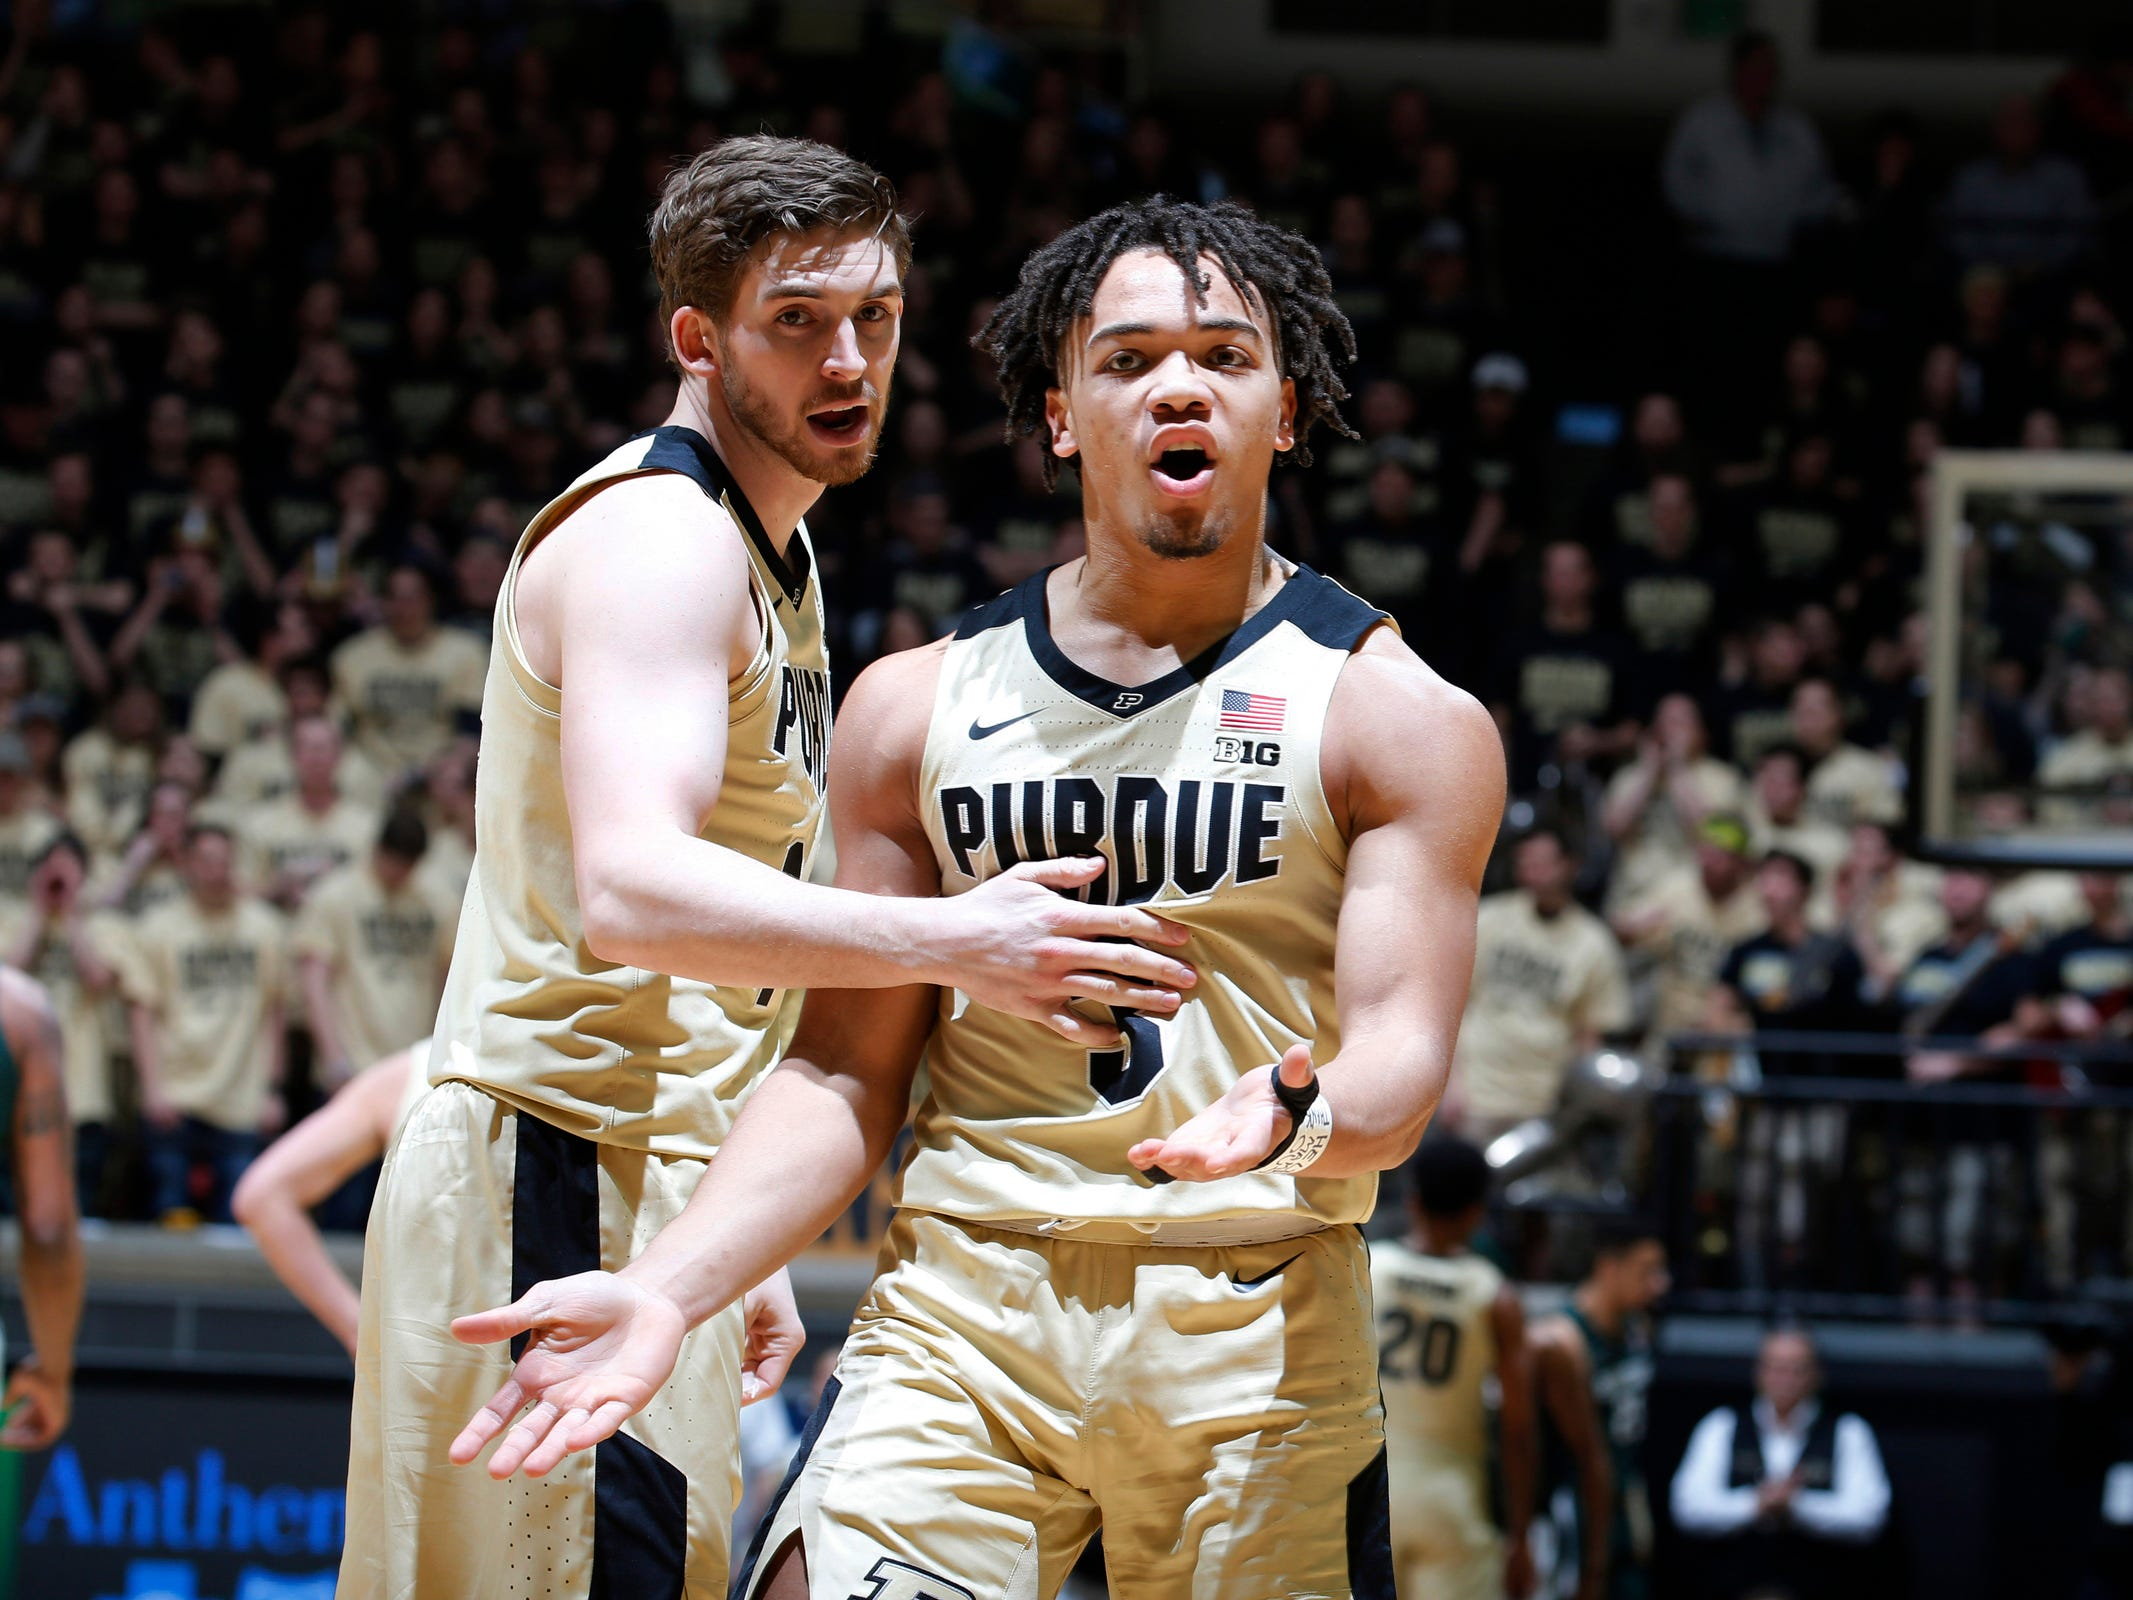 Purdue's Carsen Edwards (3) reacts to a foul not being called against Michigan State in the first half at Mackey Arena in West Lafayette, Ind. on Jan. 27, 2019.